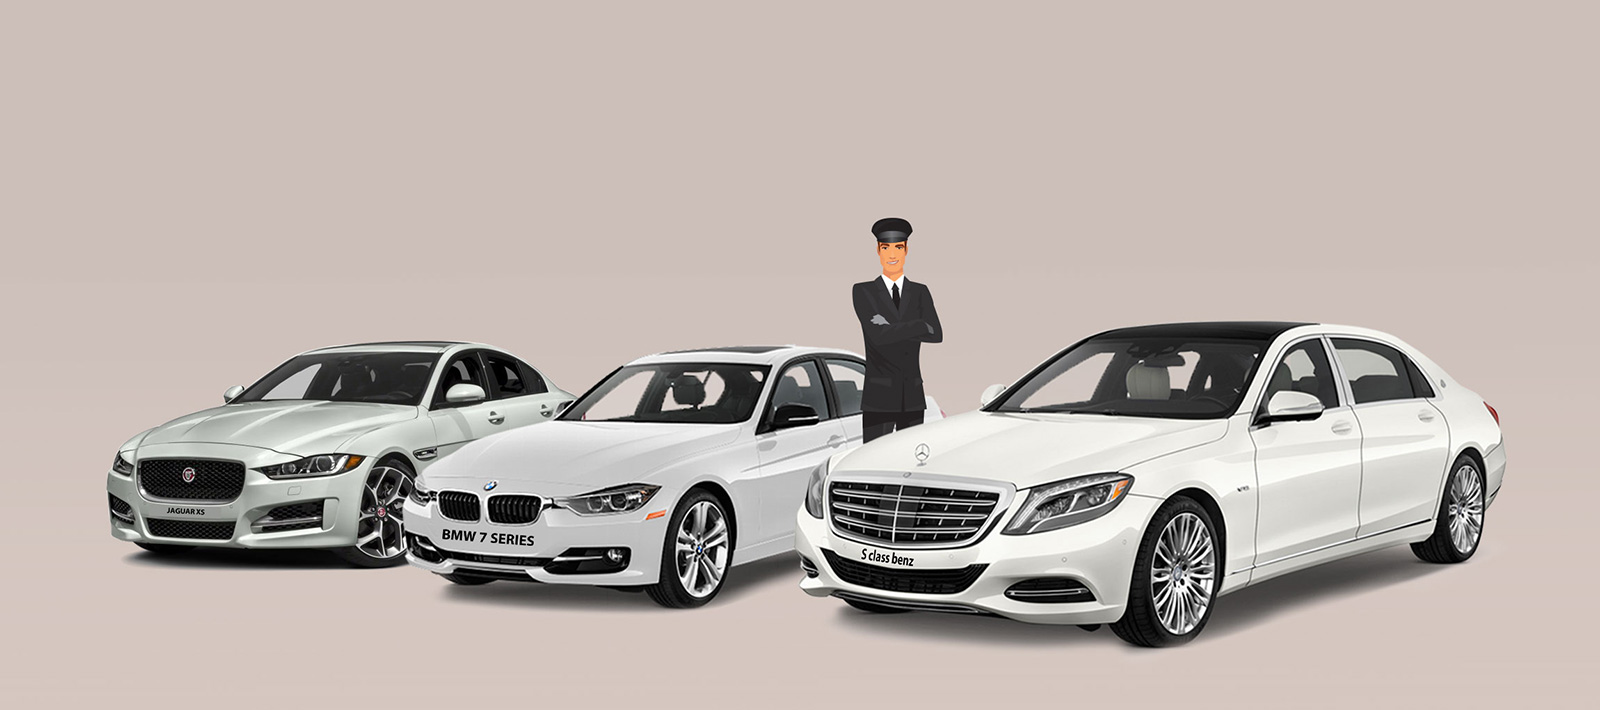 Professional Chauffeur Driven Car Rentals In Hyderabad Noori Travels